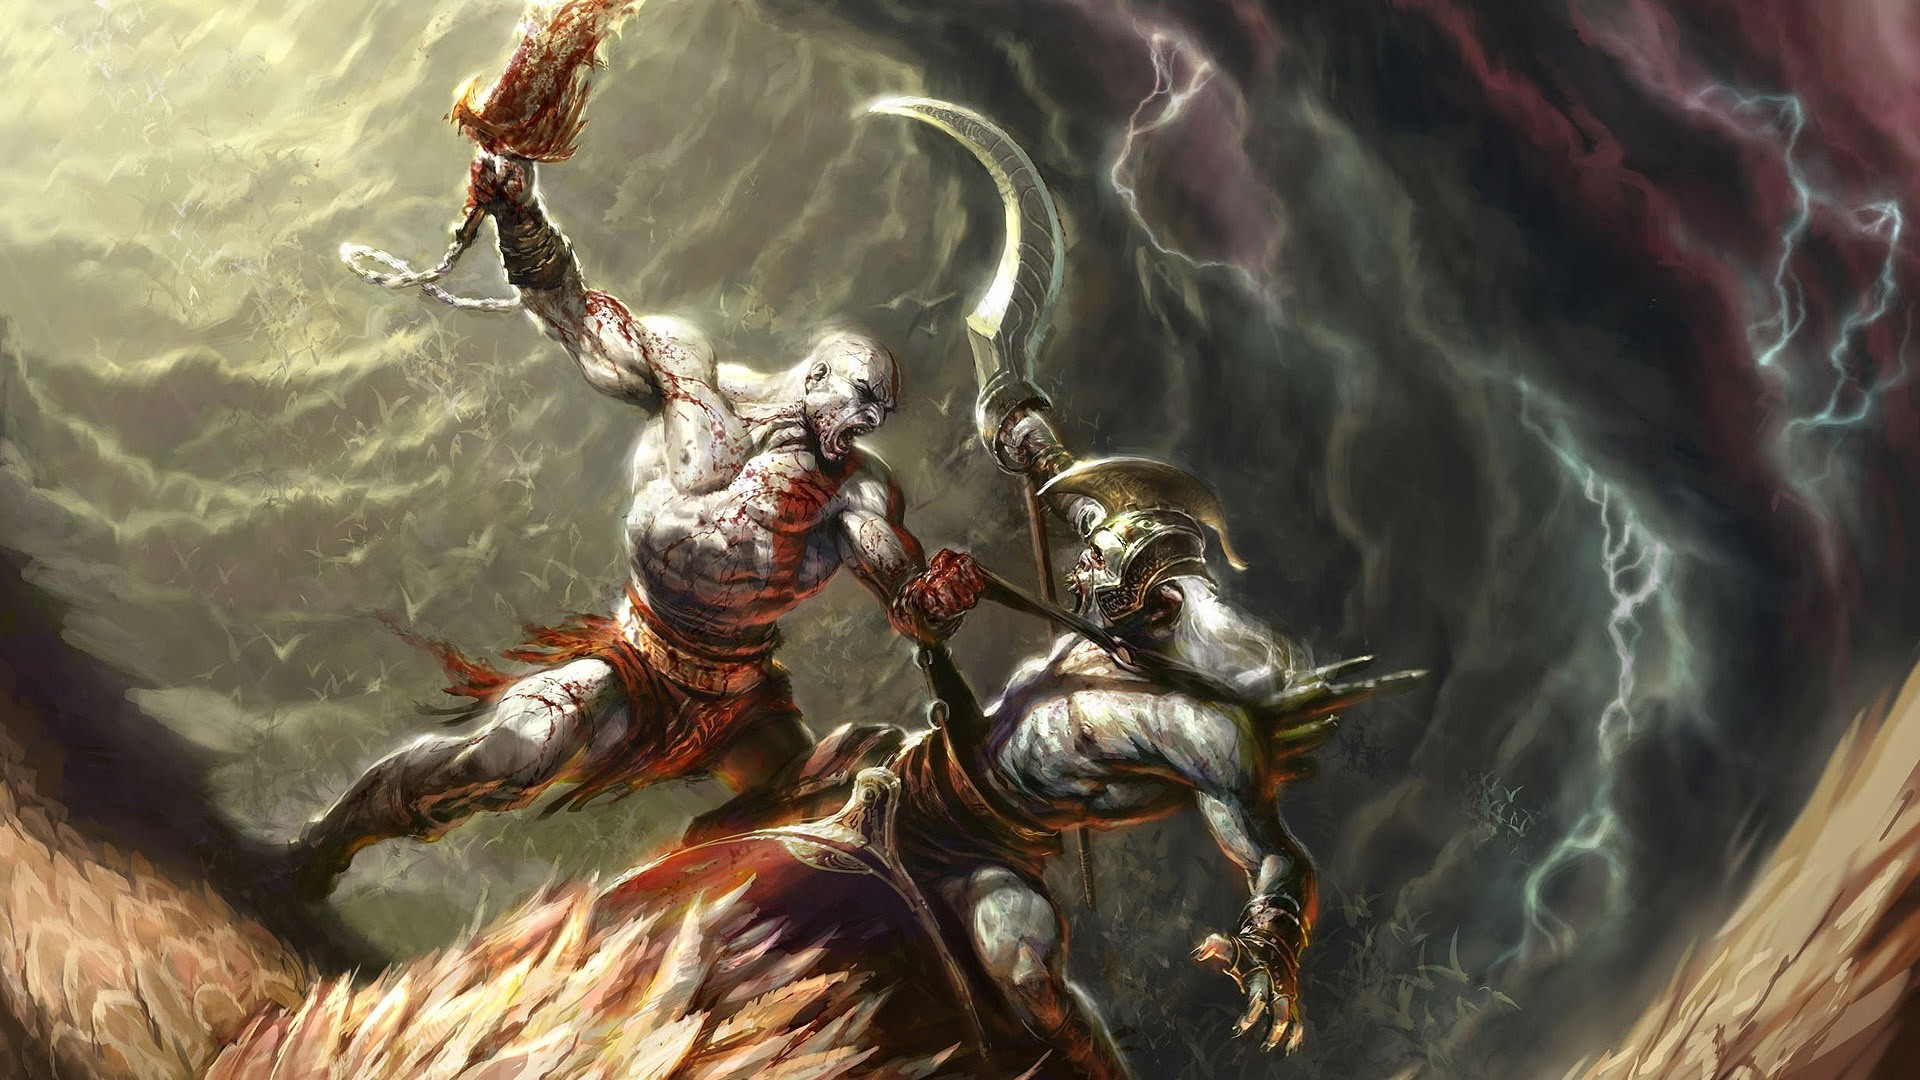 Free Download Kratos God Of War Wallpaper 9339 1920x1080 For Your